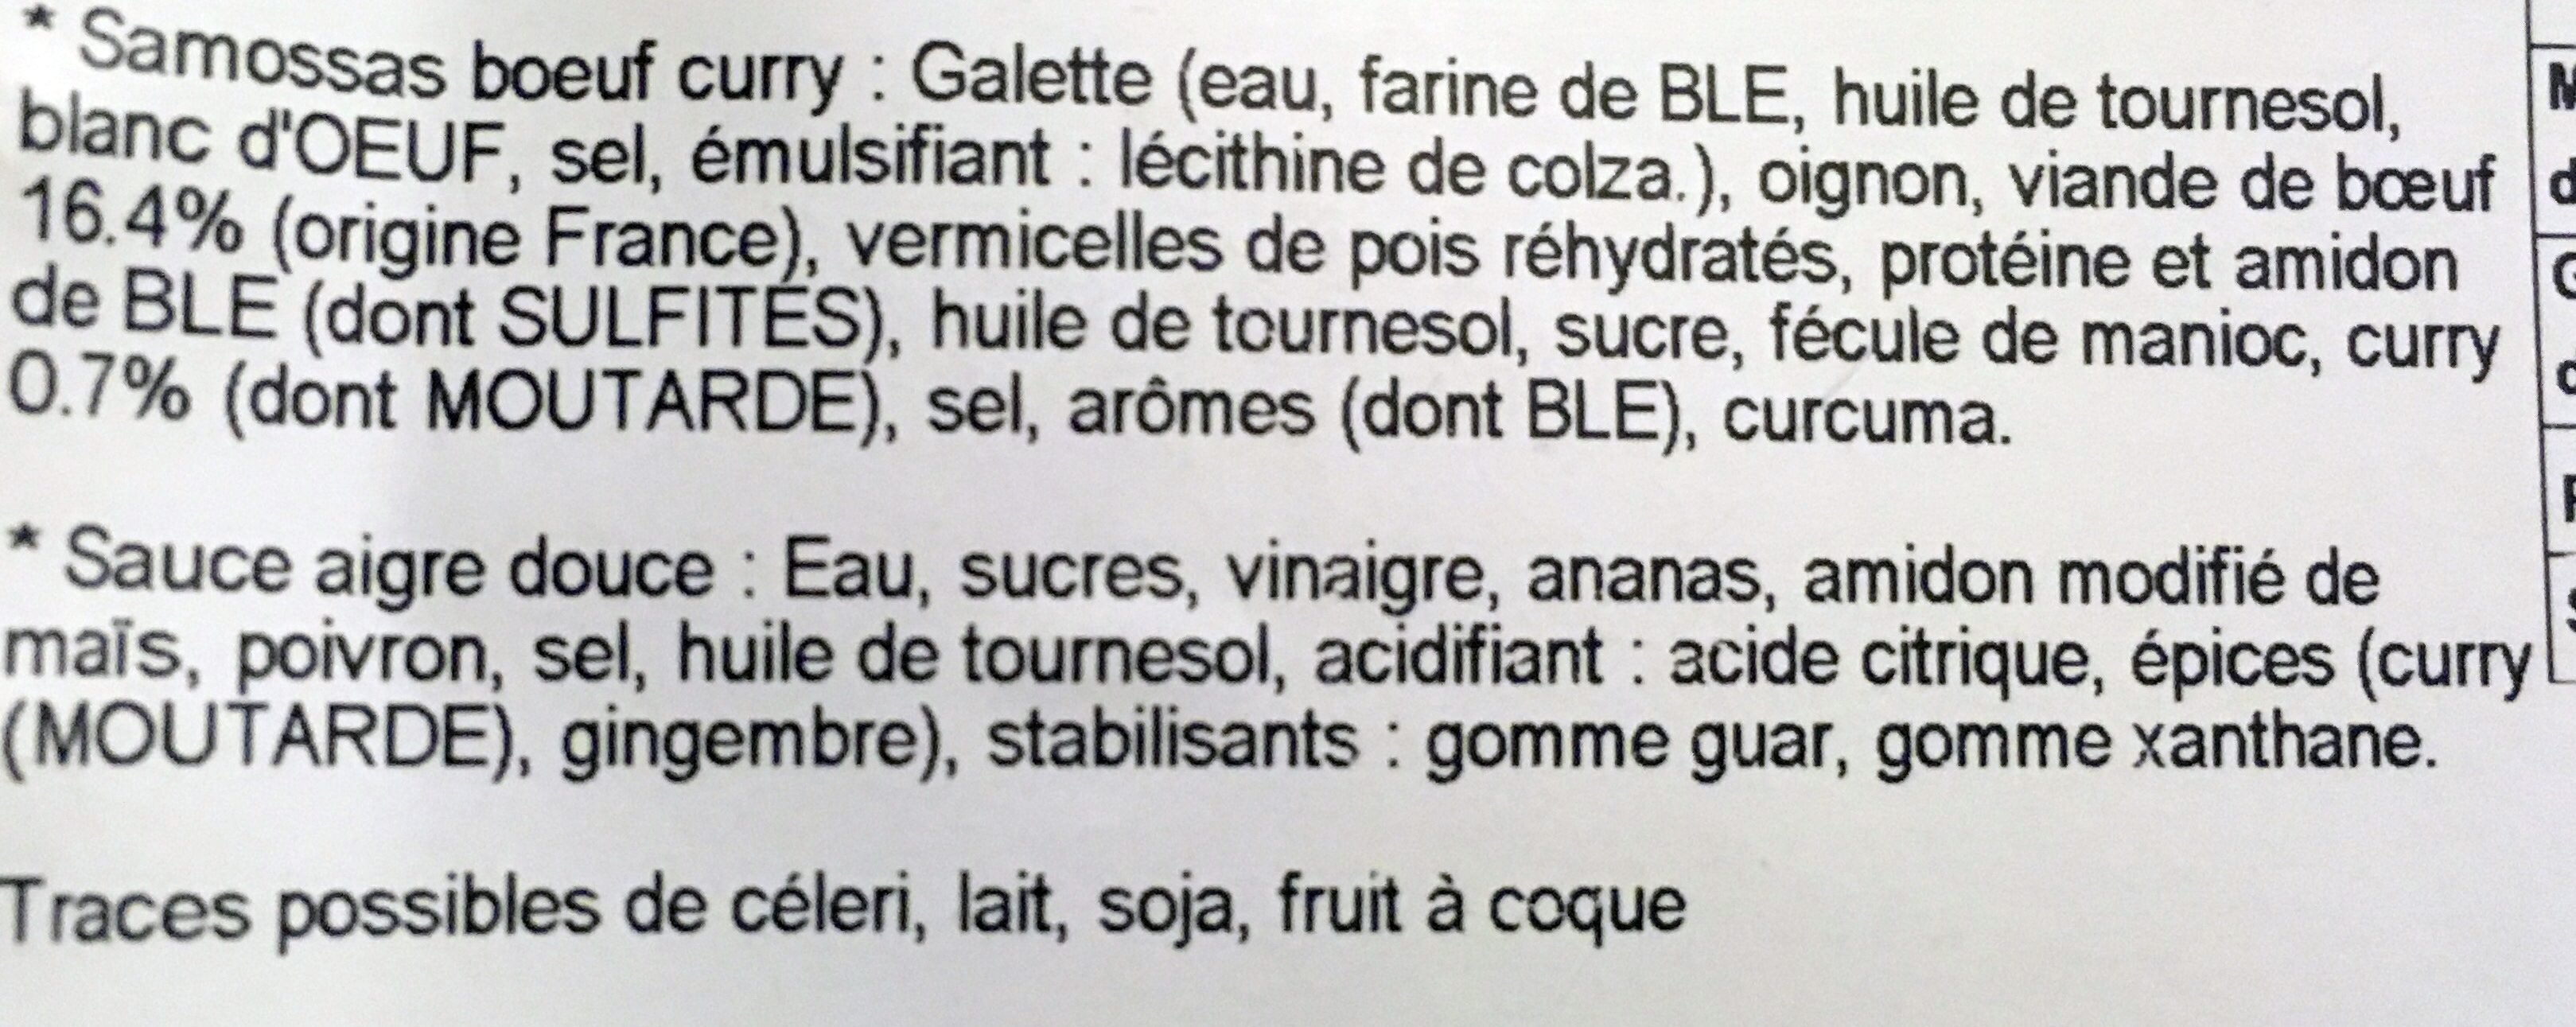 8 Samossas de Bœuf au Curry et Sauce Aigre Douce - Ingredients - fr